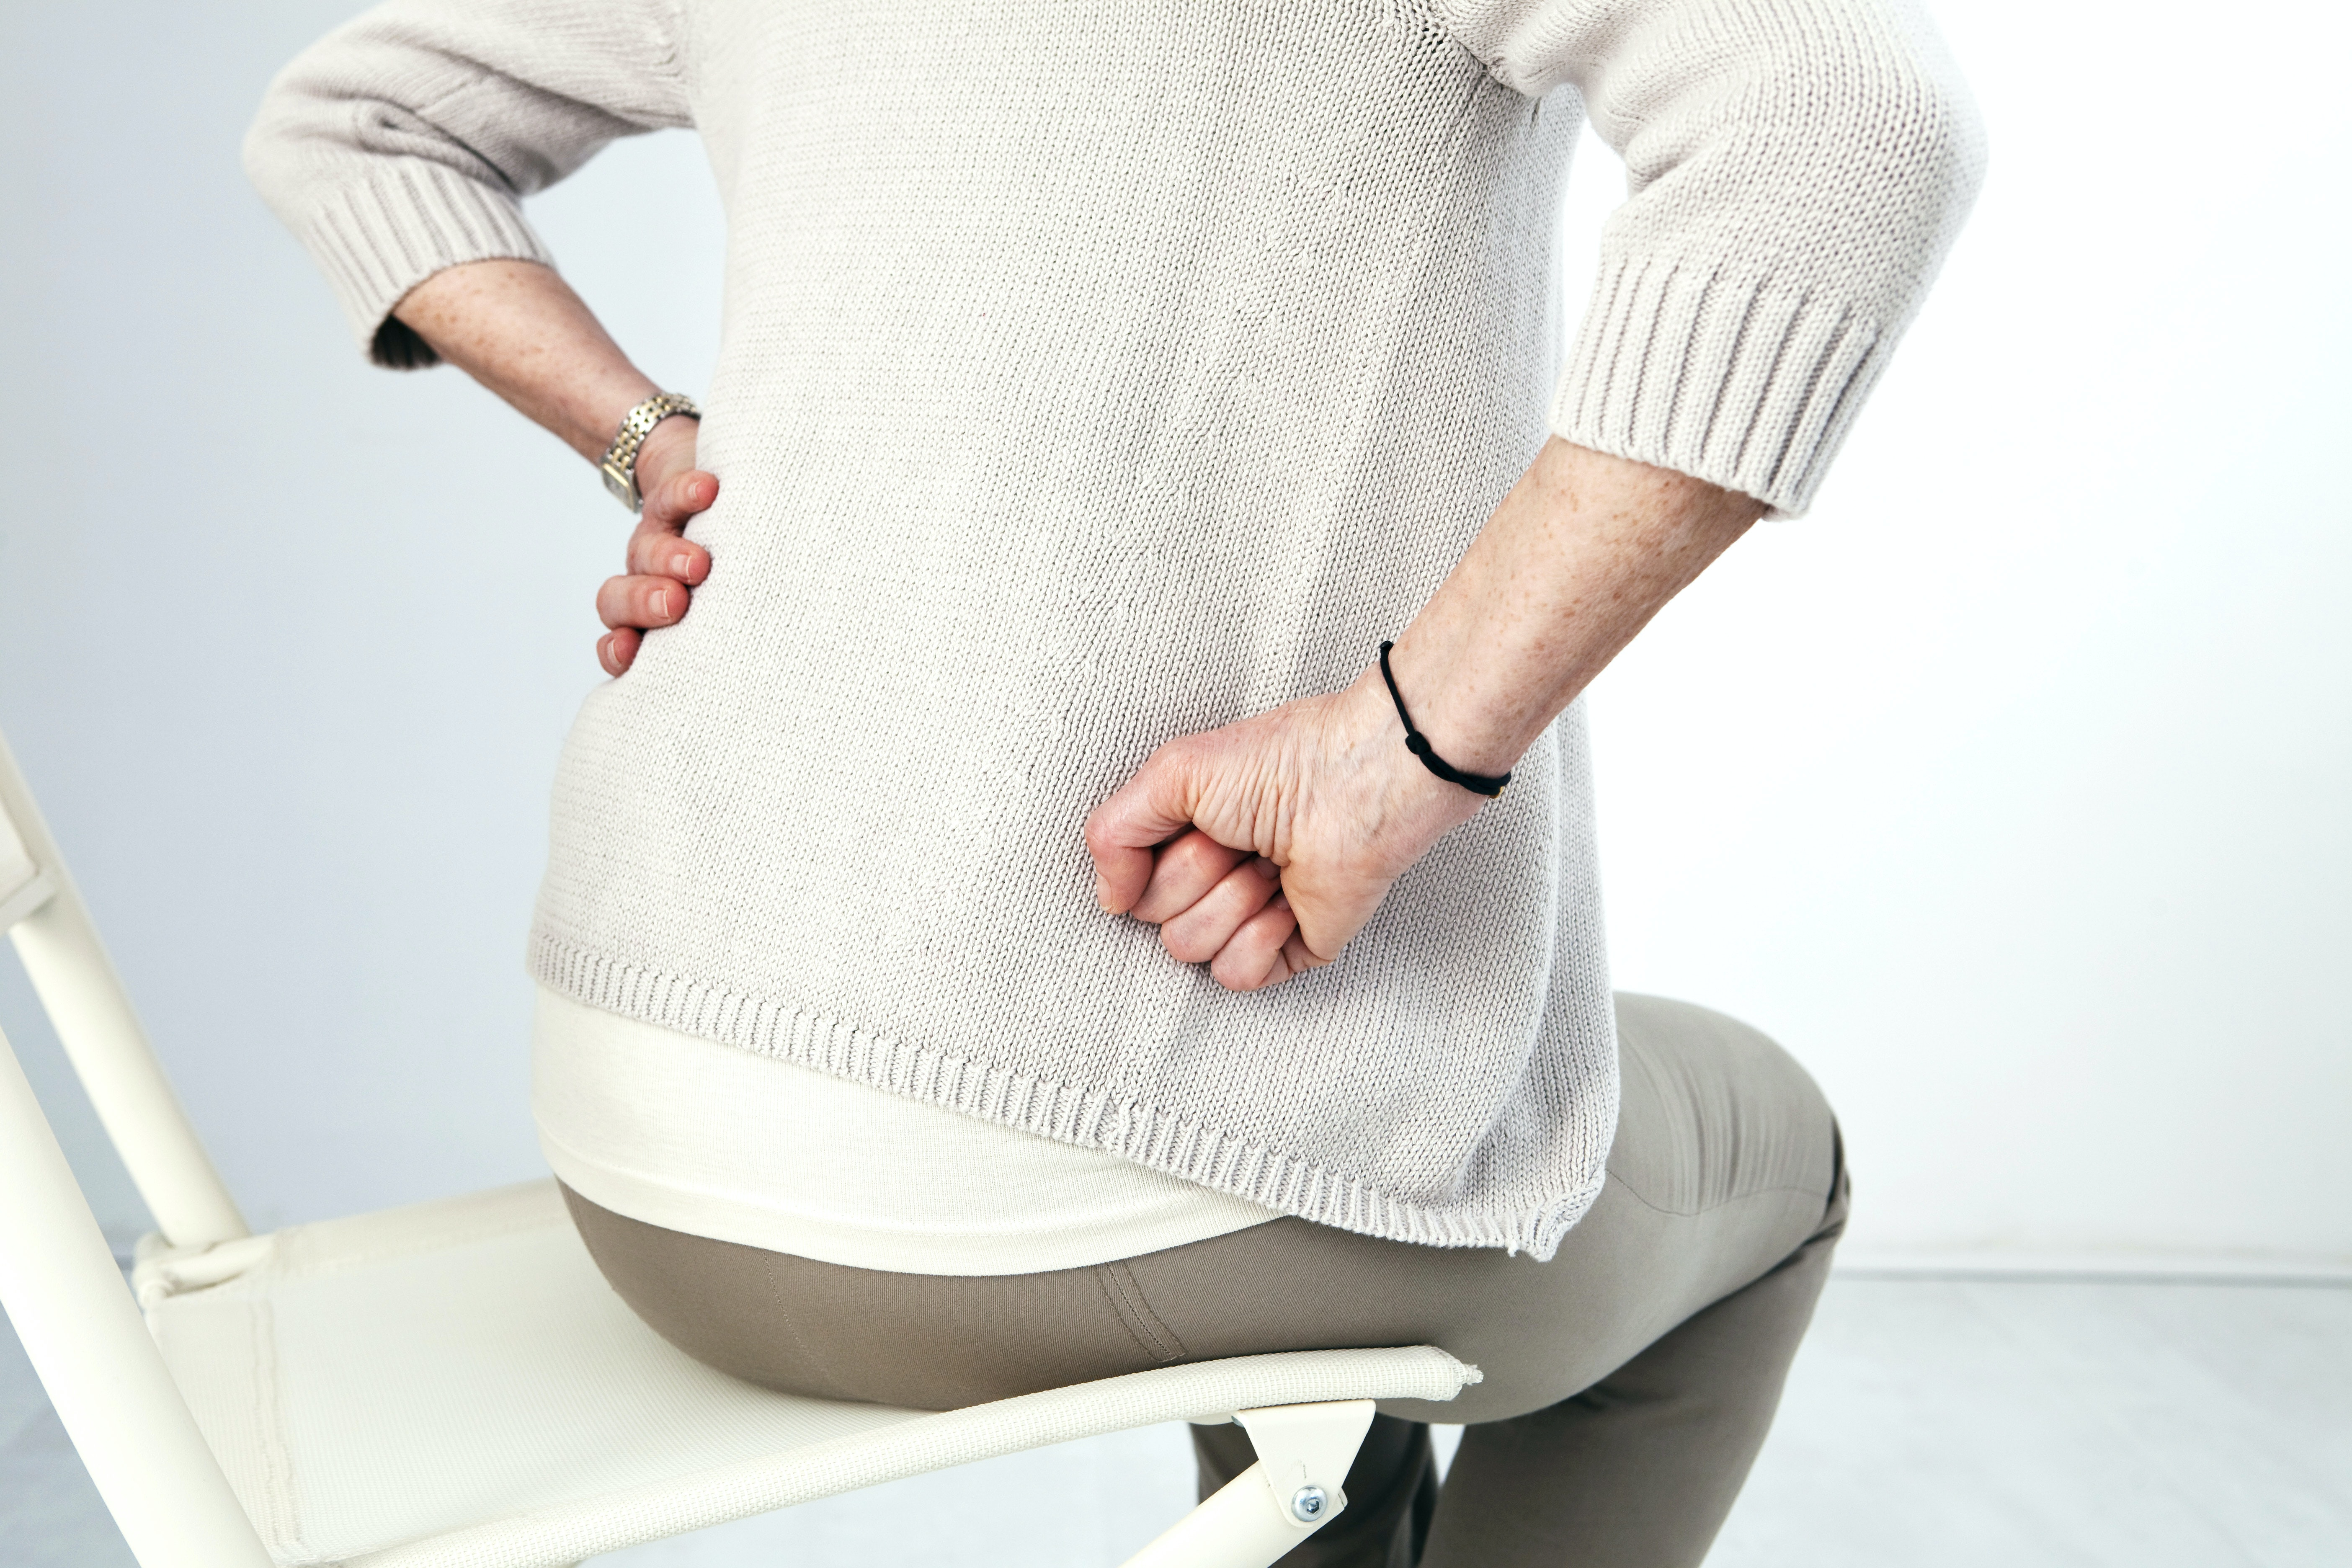 An image depicting a person suffering from Developmental Dysplasia of the Hip symptoms